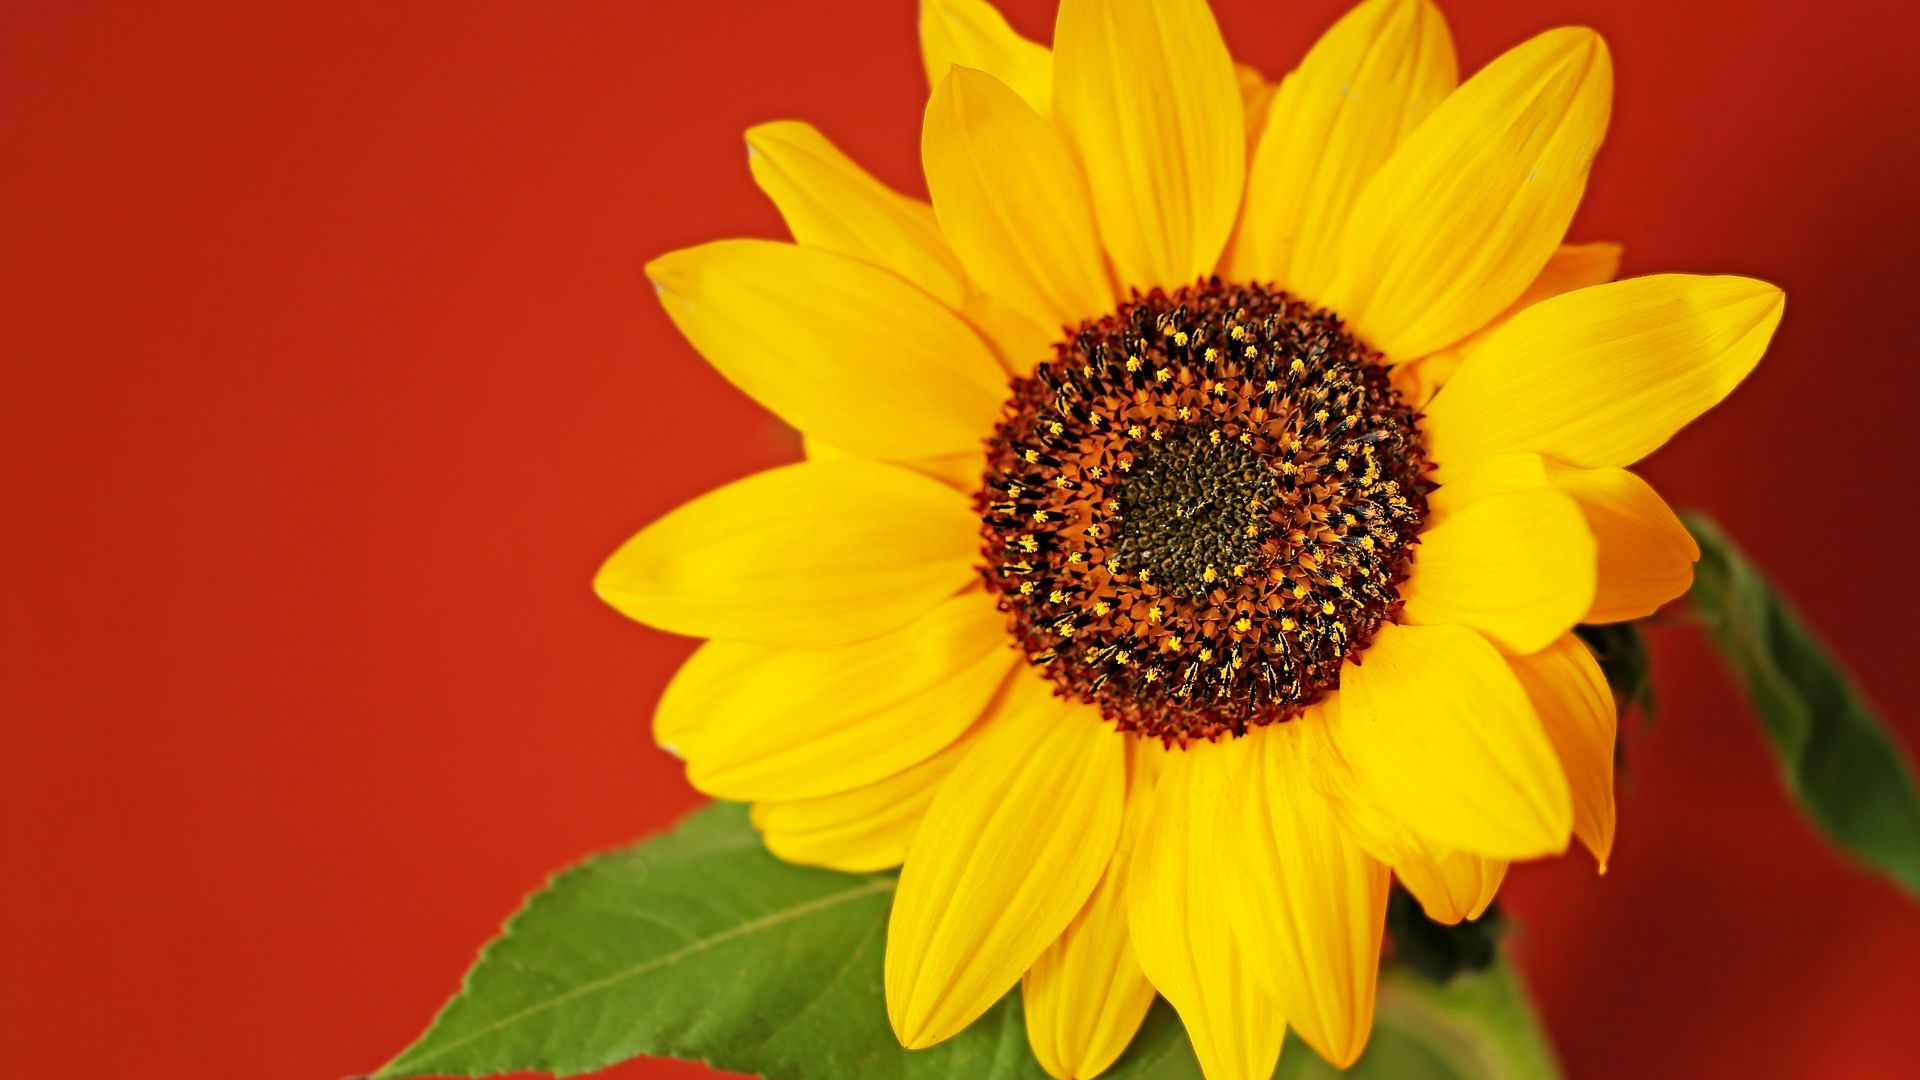 Sunflower With Red Background Sunflowers Background Red Background Sunflower Wallpaper